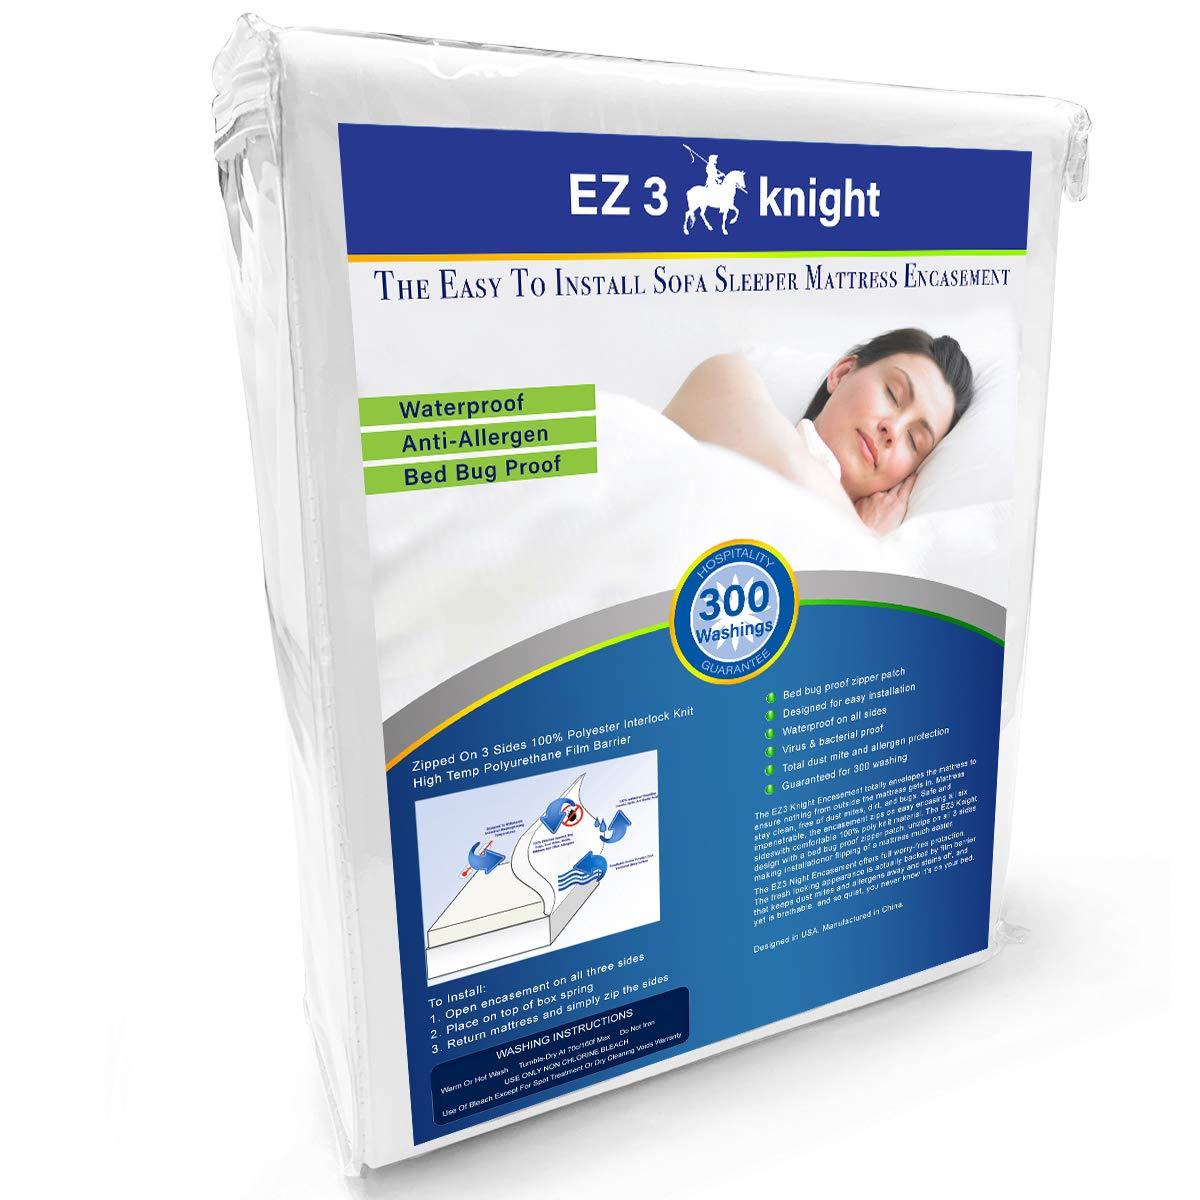 EZ3 Knight Mattress Encasement - Quality Mattress Protector Designed with 100% Waterproof, Virus & Bacteria Proof, Hypoallergenic Poly-Knit Material (Queen Sofa Sleeper)